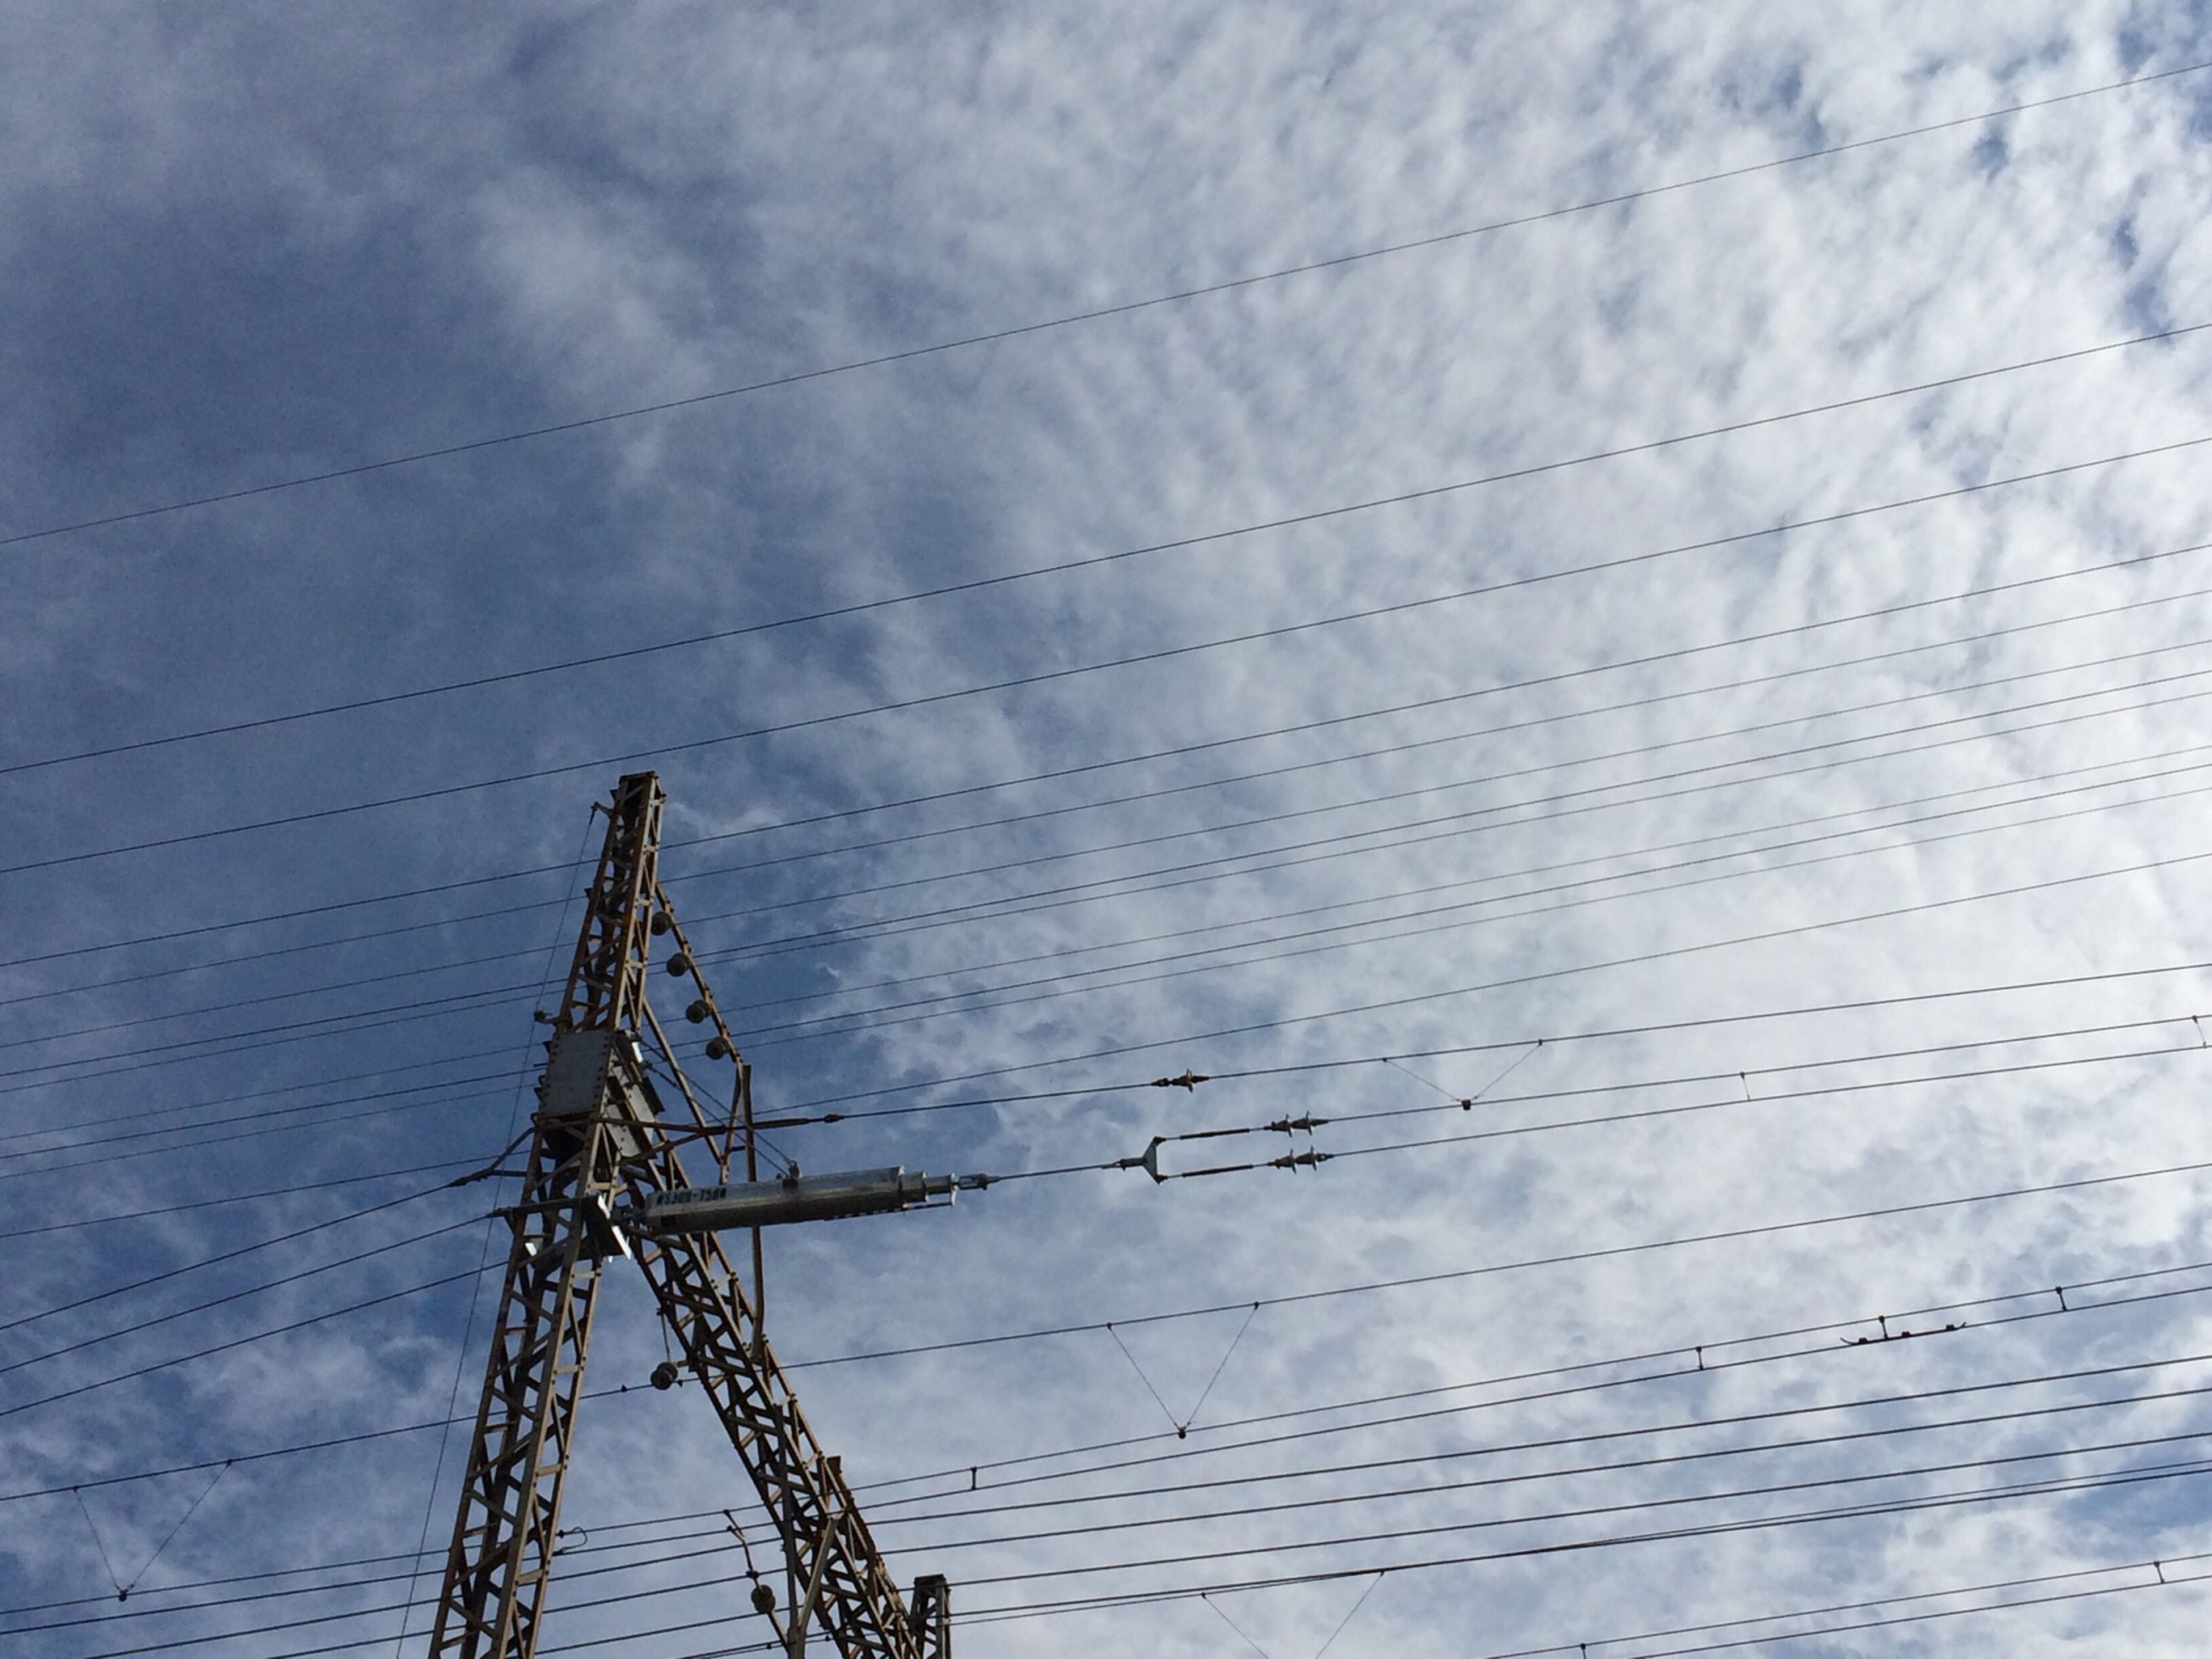 low angle view, sky, power line, electricity pylon, cloud - sky, connection, electricity, power supply, cable, technology, cloudy, fuel and power generation, cloud, built structure, day, outdoors, no people, weather, blue, nature